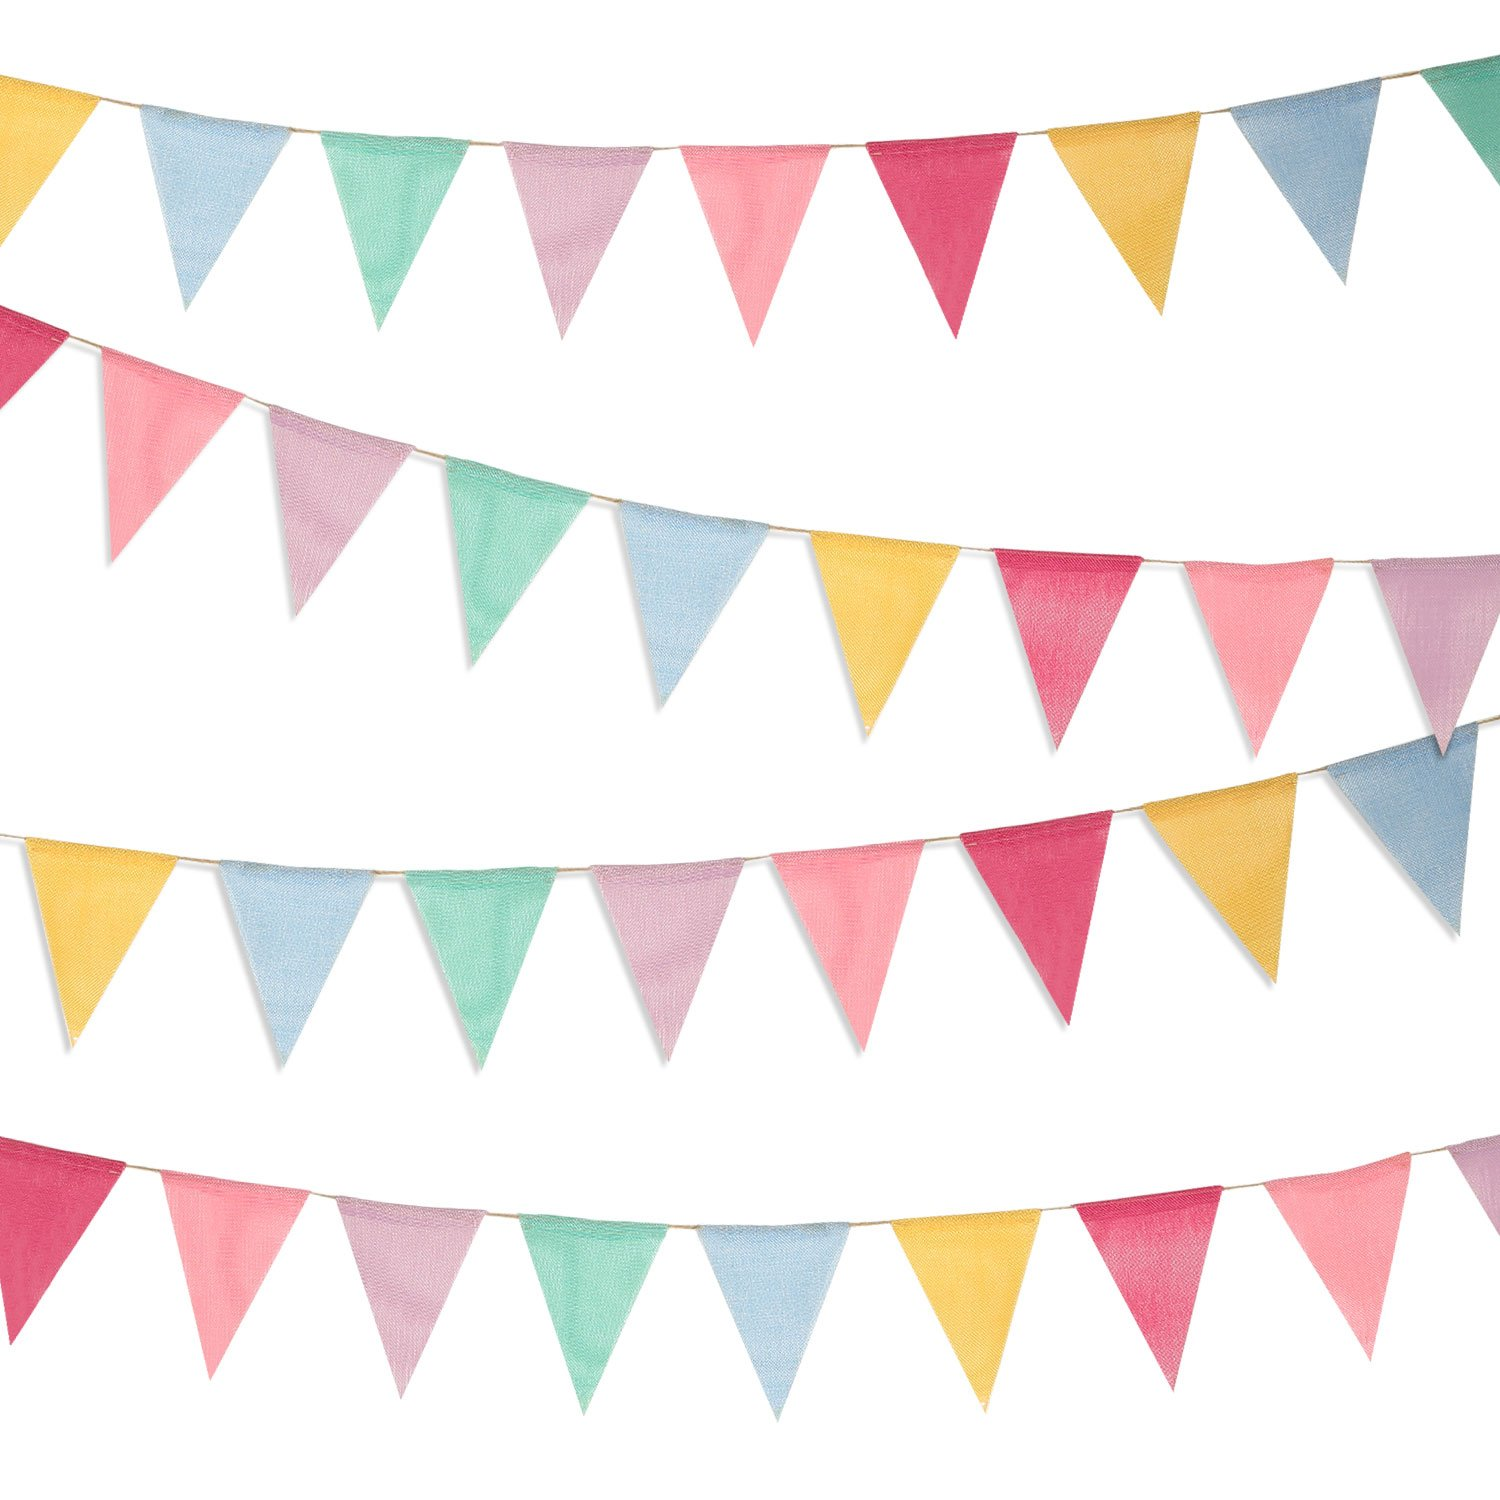 Boao 48 Pieces Colorful Pennant Banner Flags Imitated Burlap Bunting Banner for Party Decoration